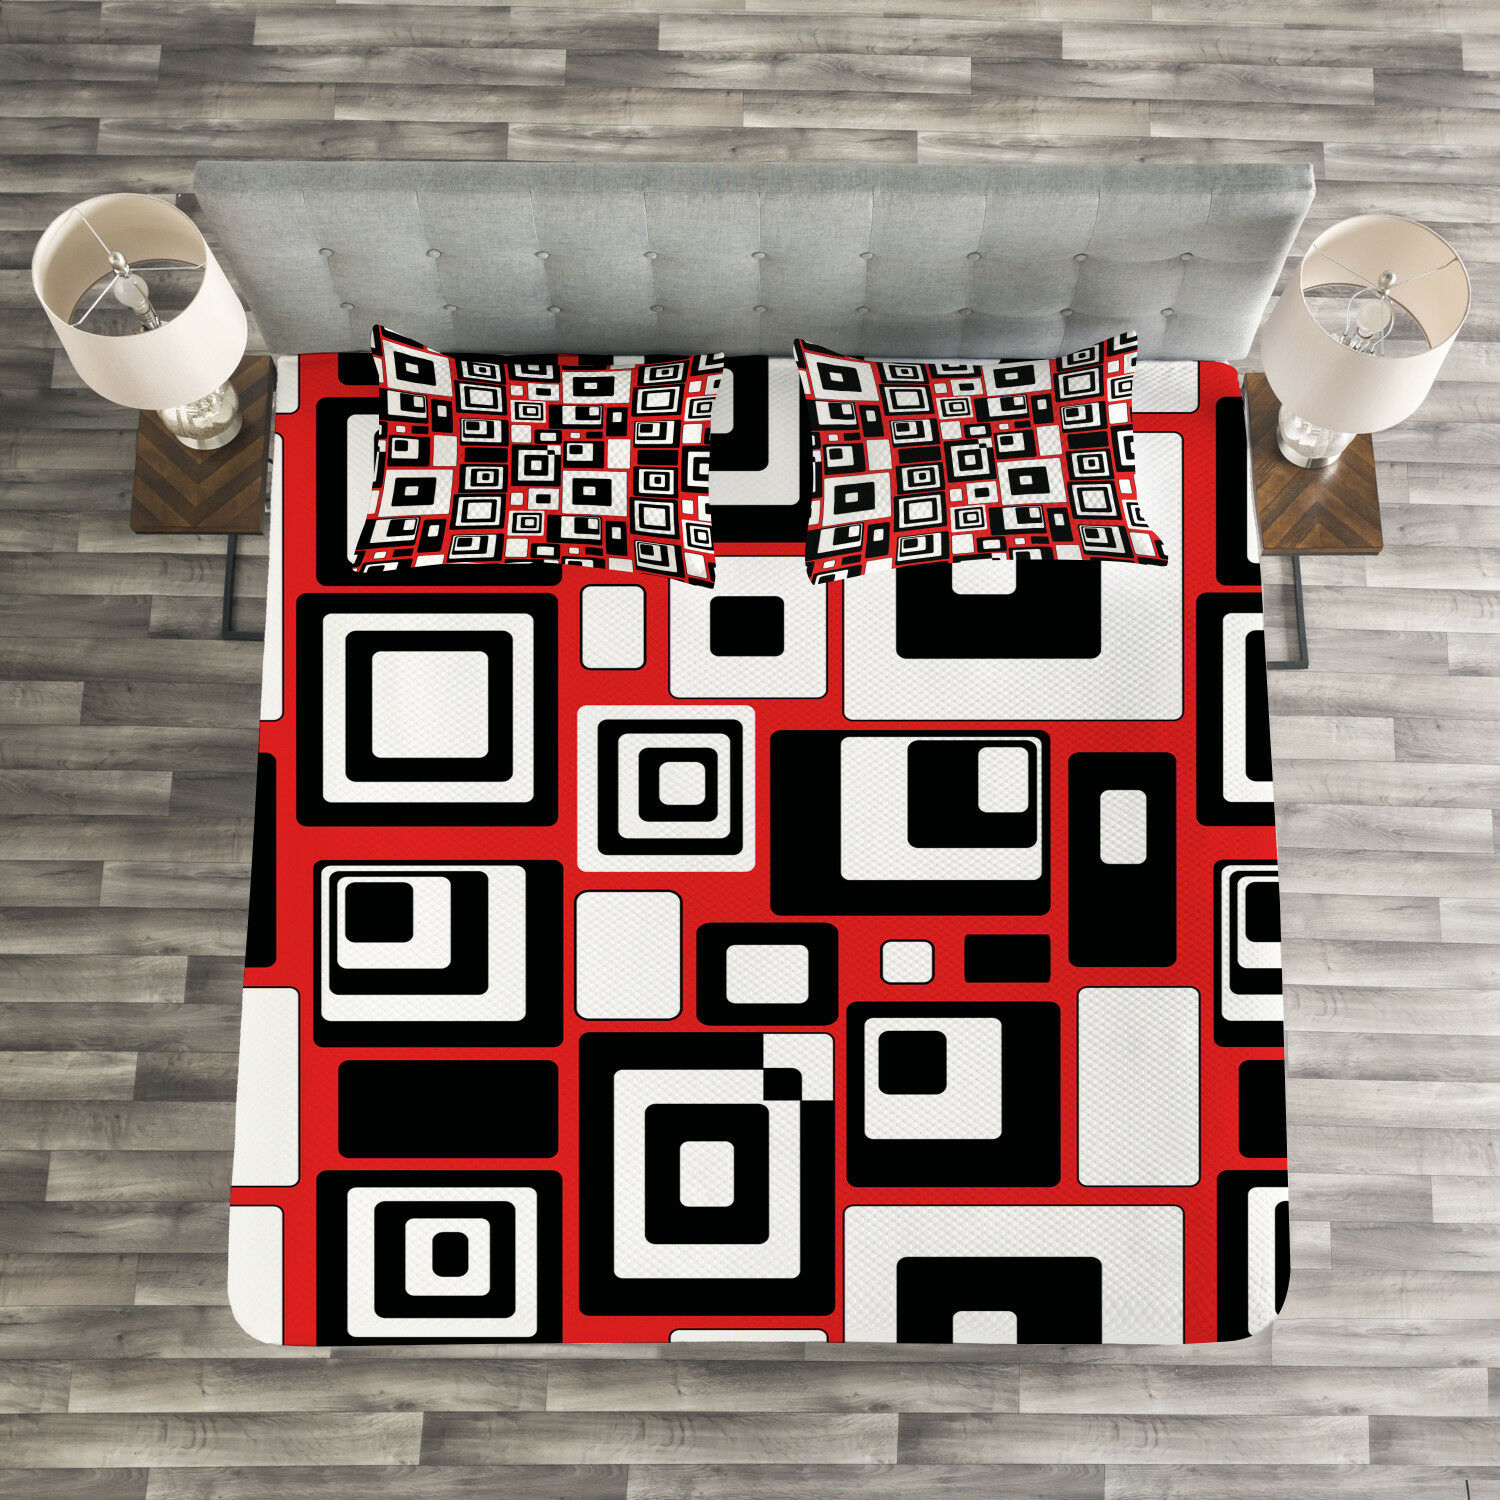 Abstract Quilted Bedspread & Pillow Shams Set, Minimalist Retro Artsy Print